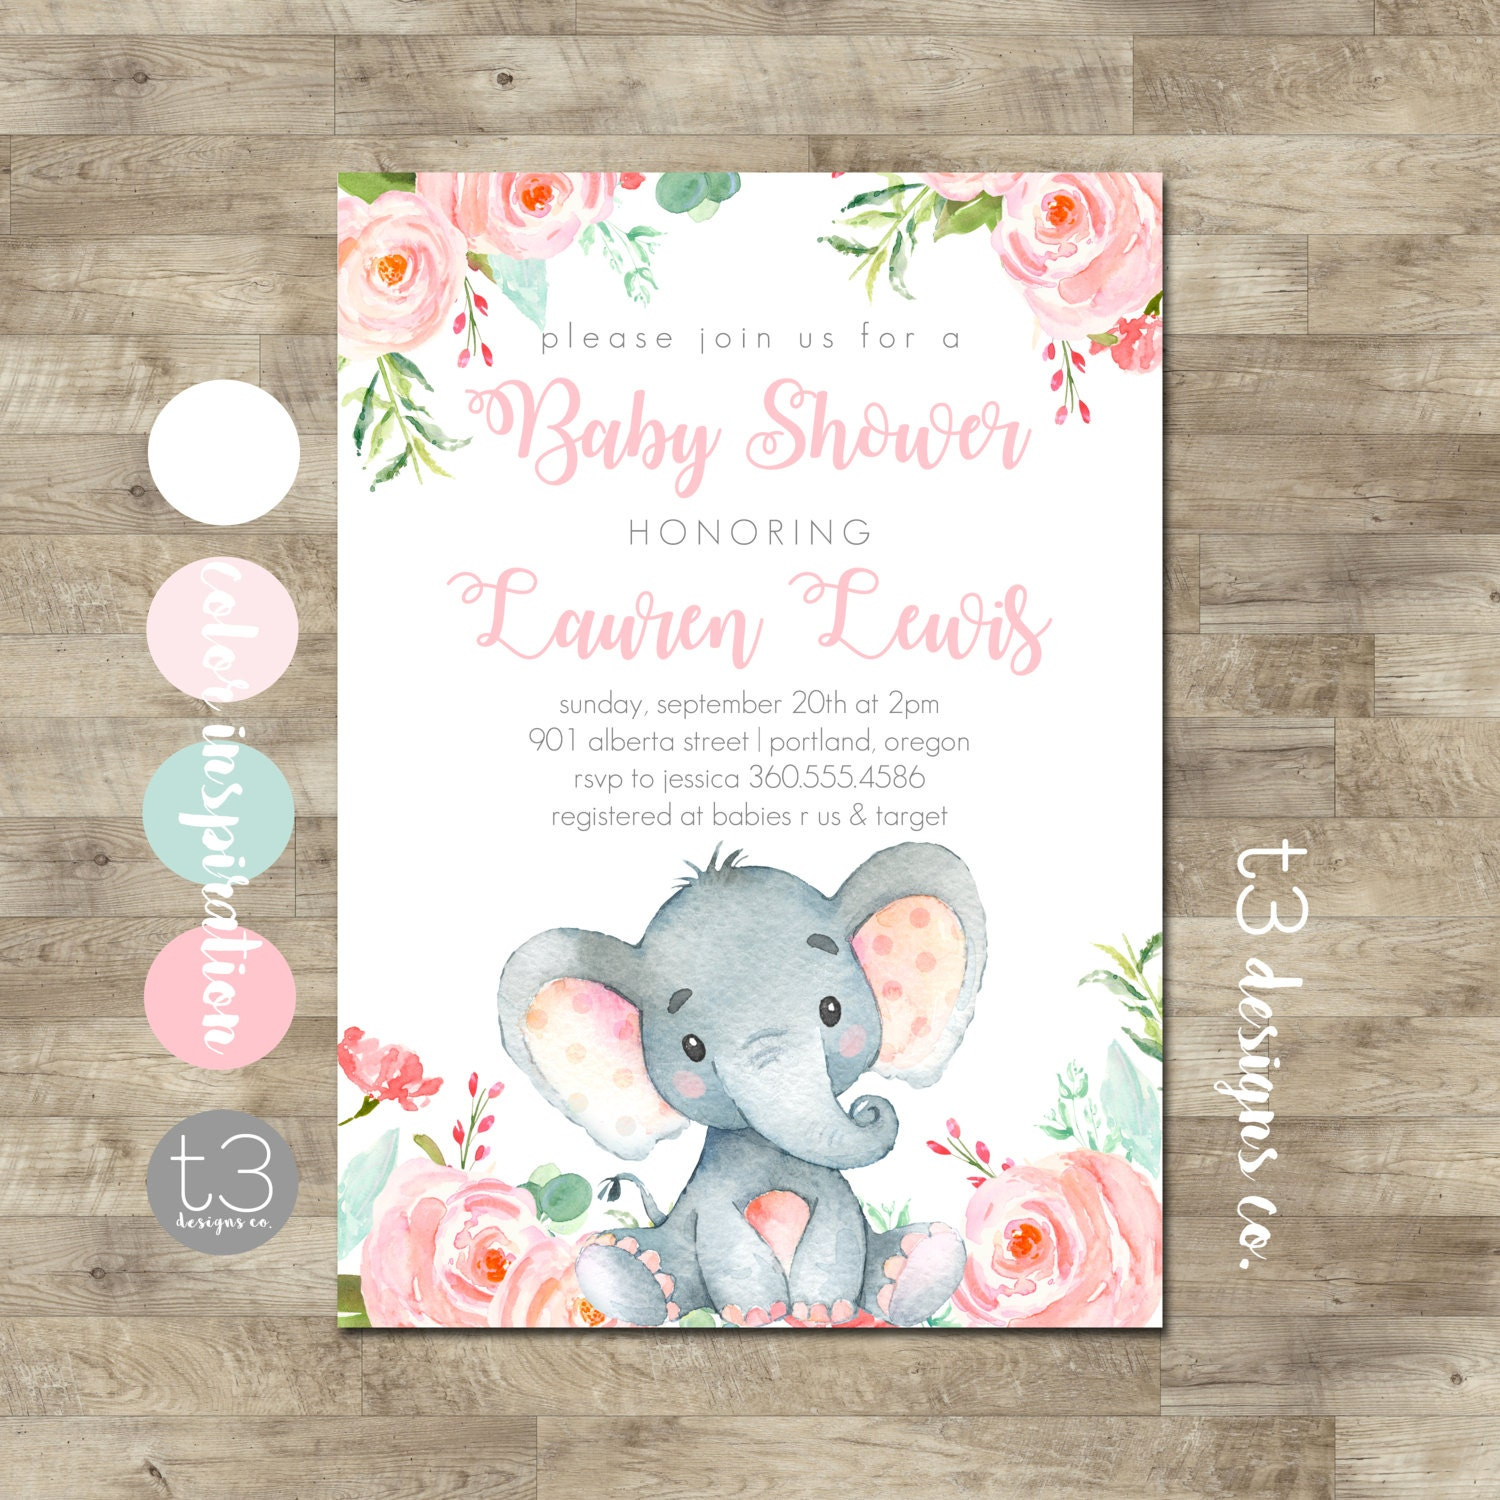 Girl elephant baby shower invitation safari baby shower invitation girl elephant baby shower invitation safari baby shower invitation girl elephant invitation jungle baby shower invite floral elephant filmwisefo Images